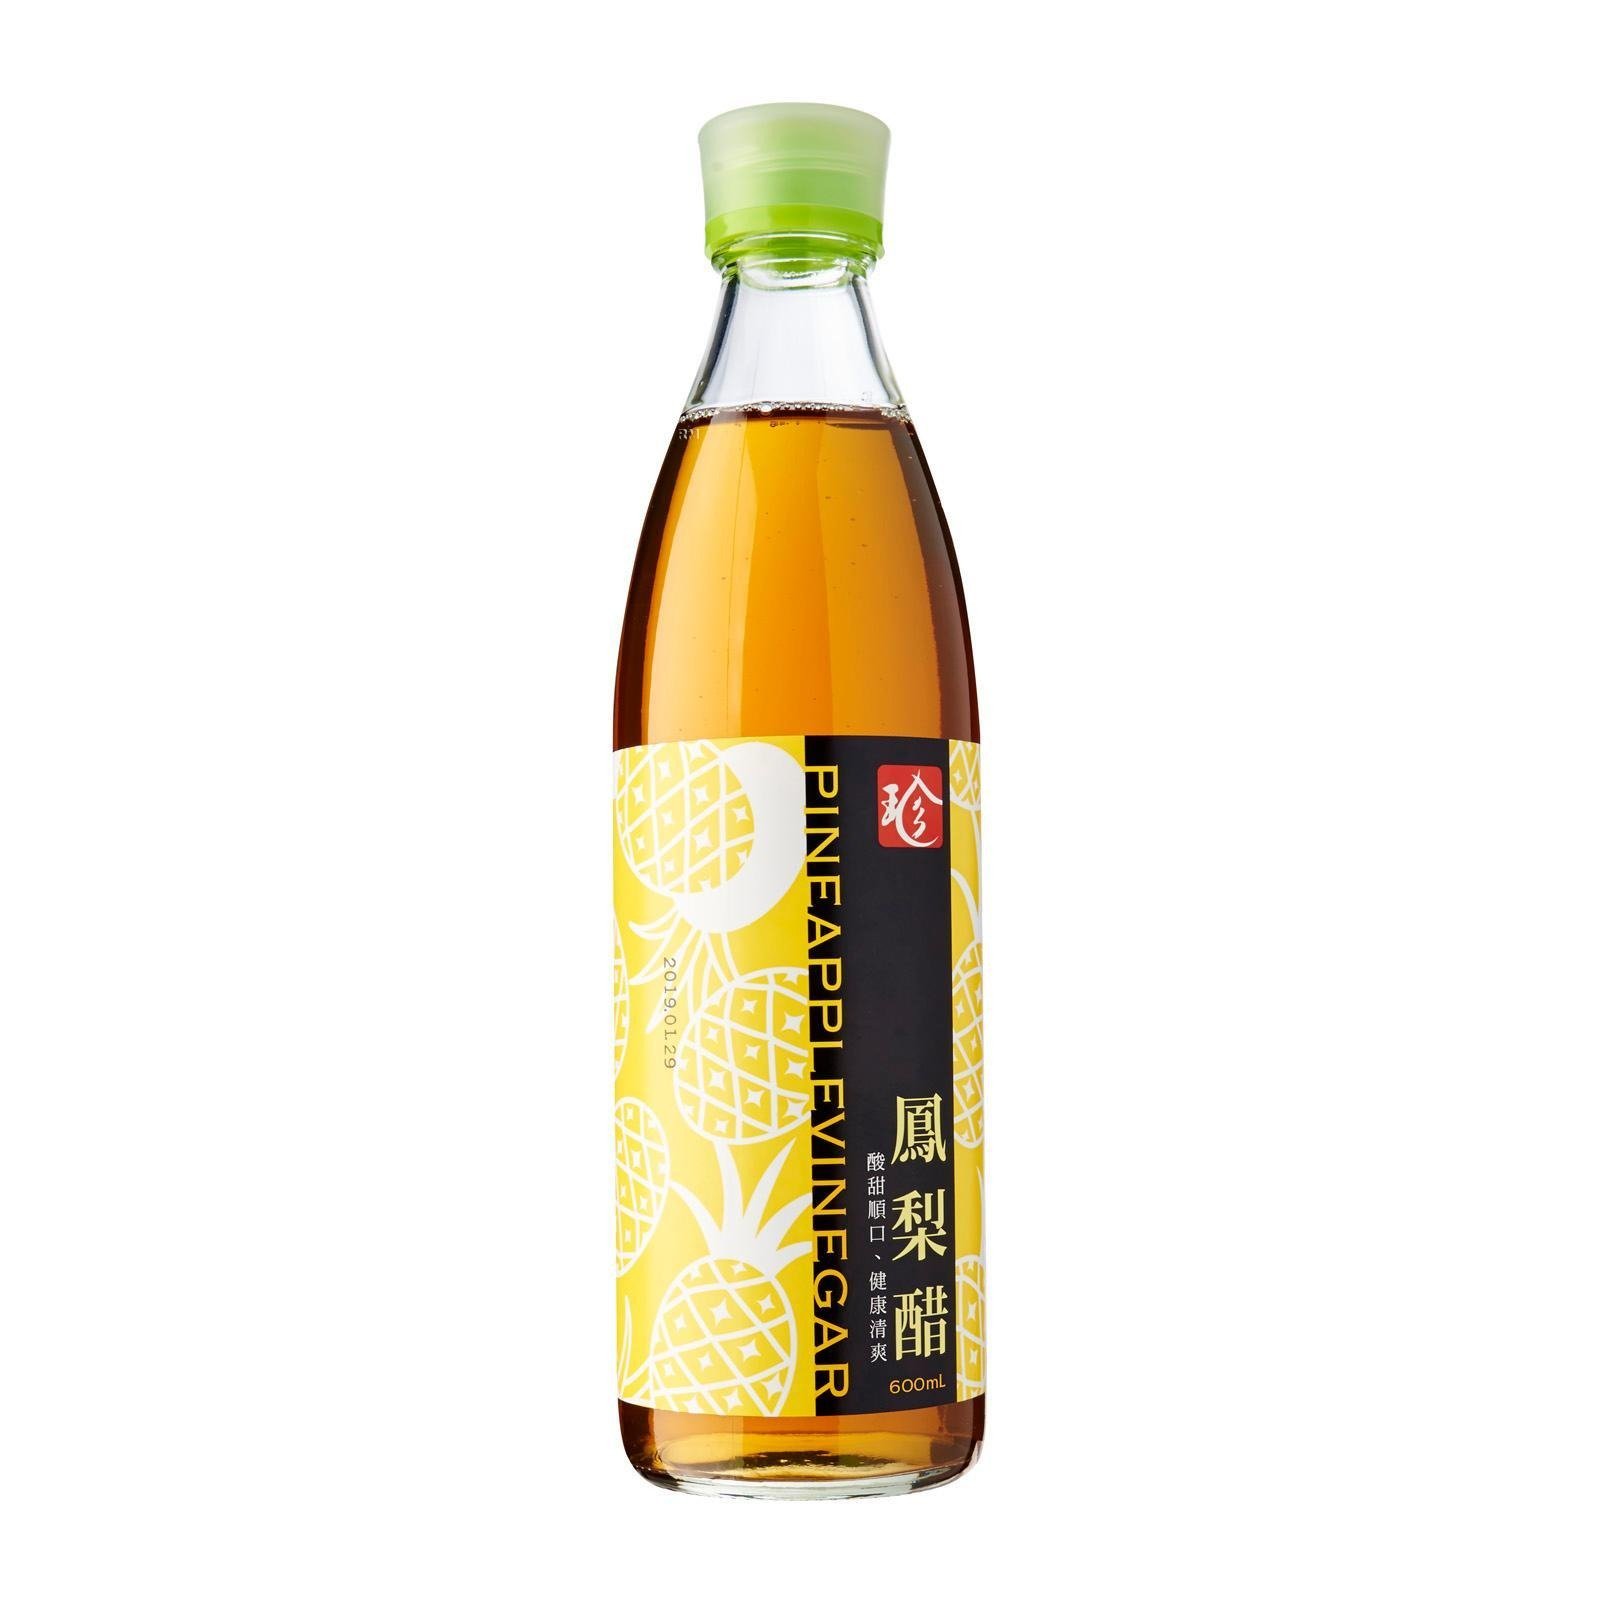 Pai Chia Chen Fruit Drinking Vinegar - Pineapple